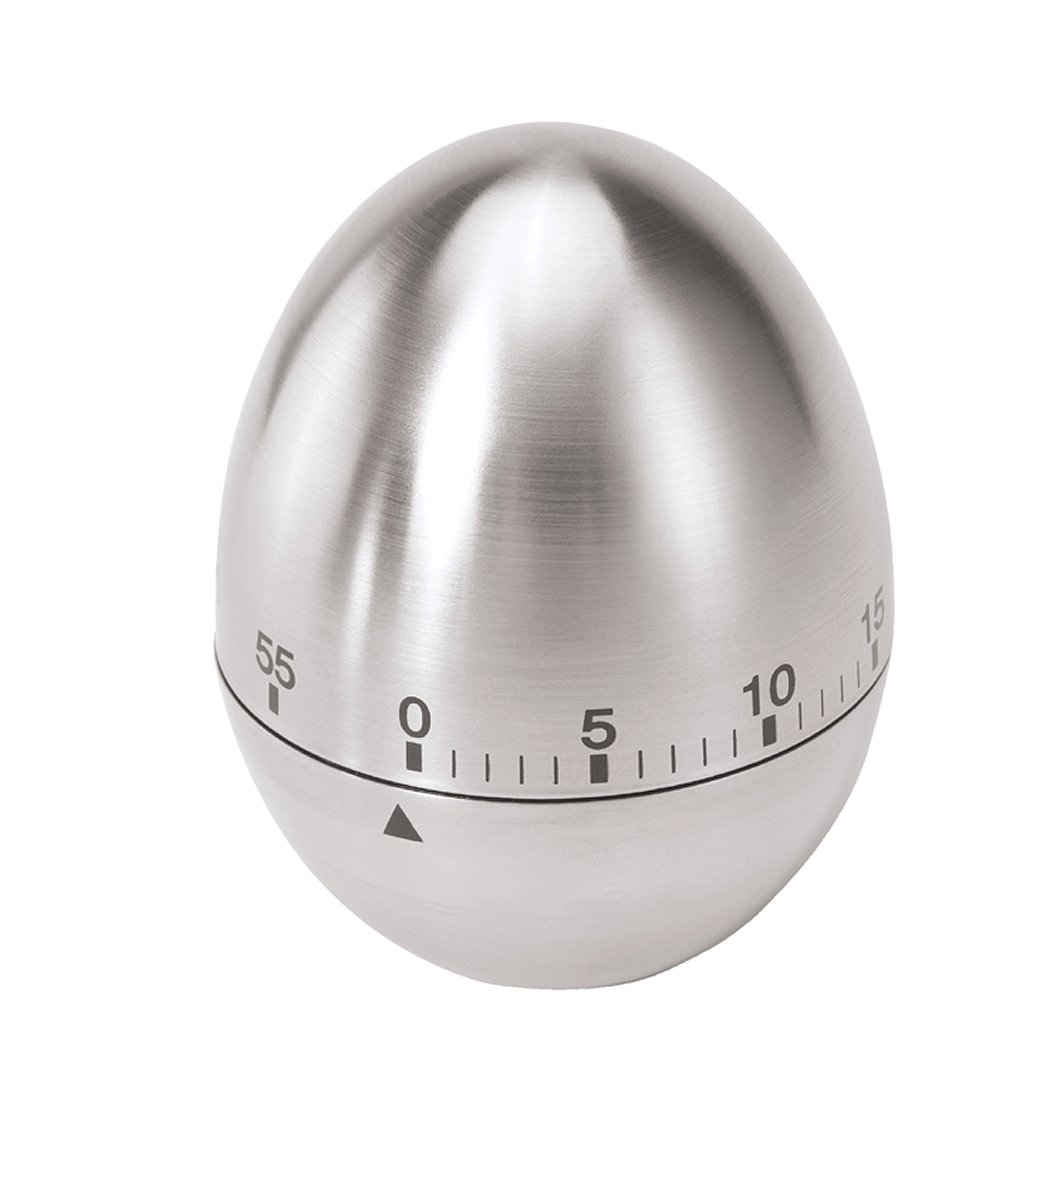 Ikea Ordning Kitchen Timer Buy Oggi Egg Stainless Steel 60 Minute Kitchen Timer Online At Low